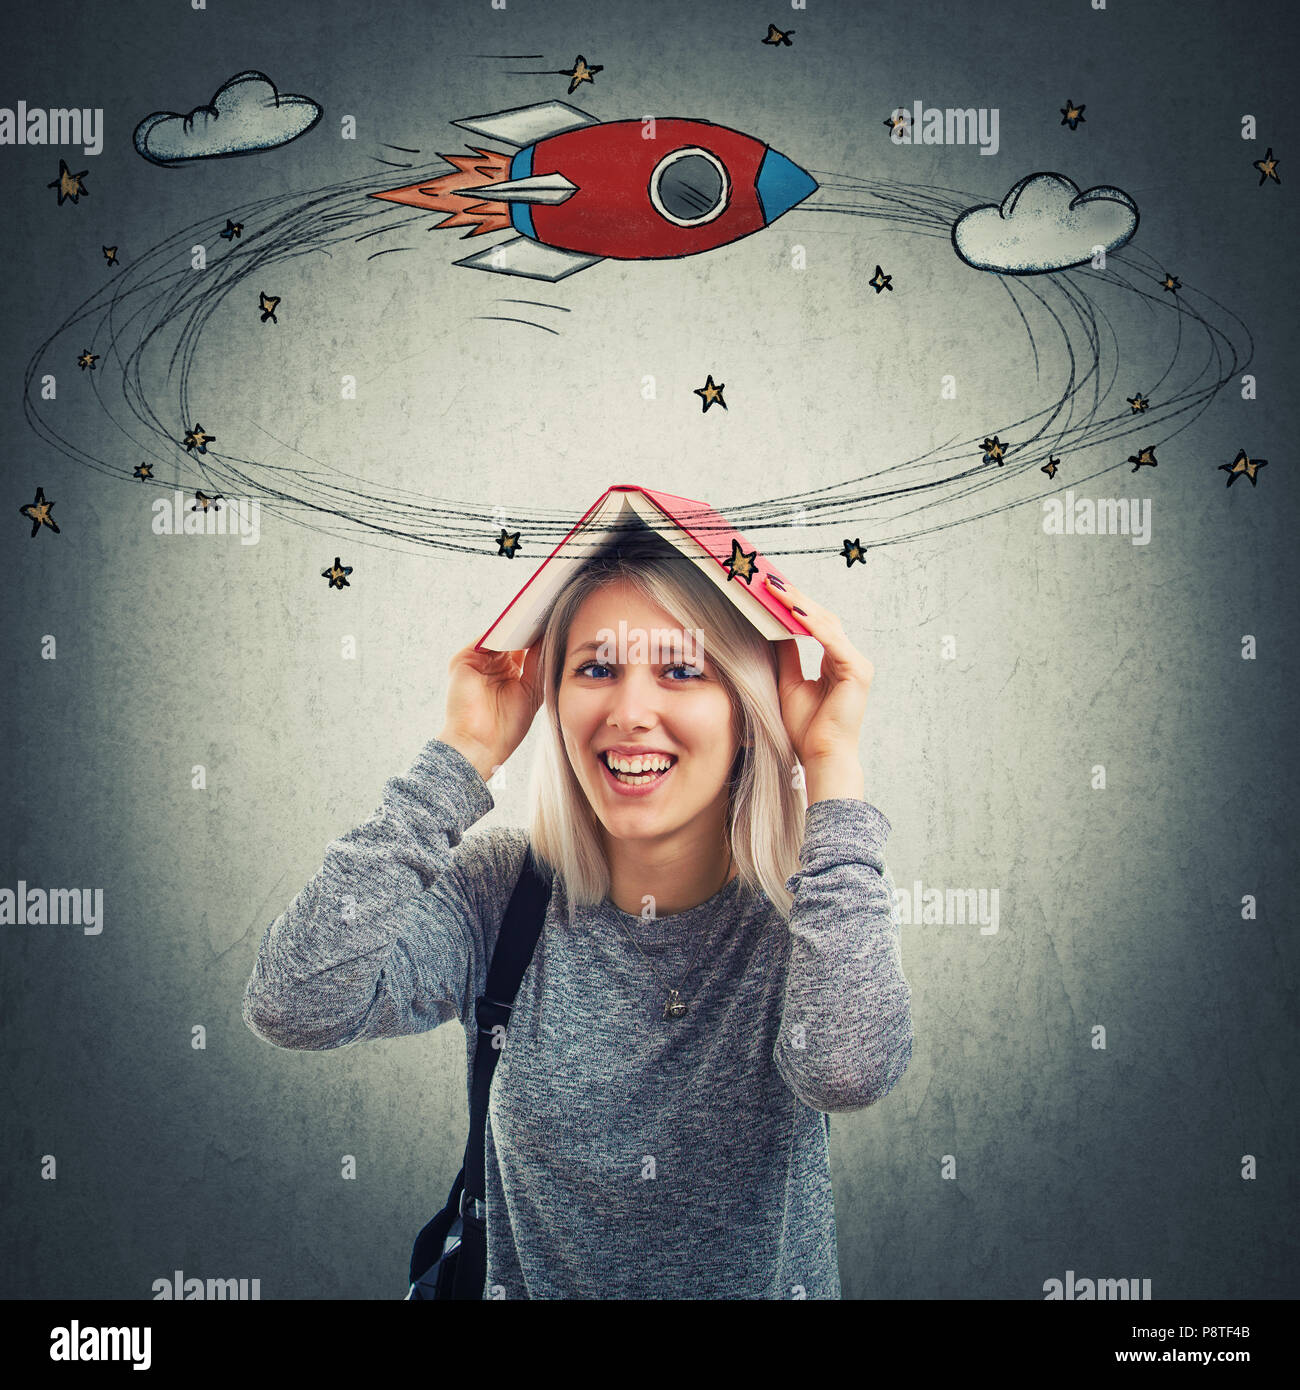 Smiling young woman holding a opened book over her head can't concentrate on learning. Dizzy disheveled girl going crazy with amount of study daydream - Stock Image